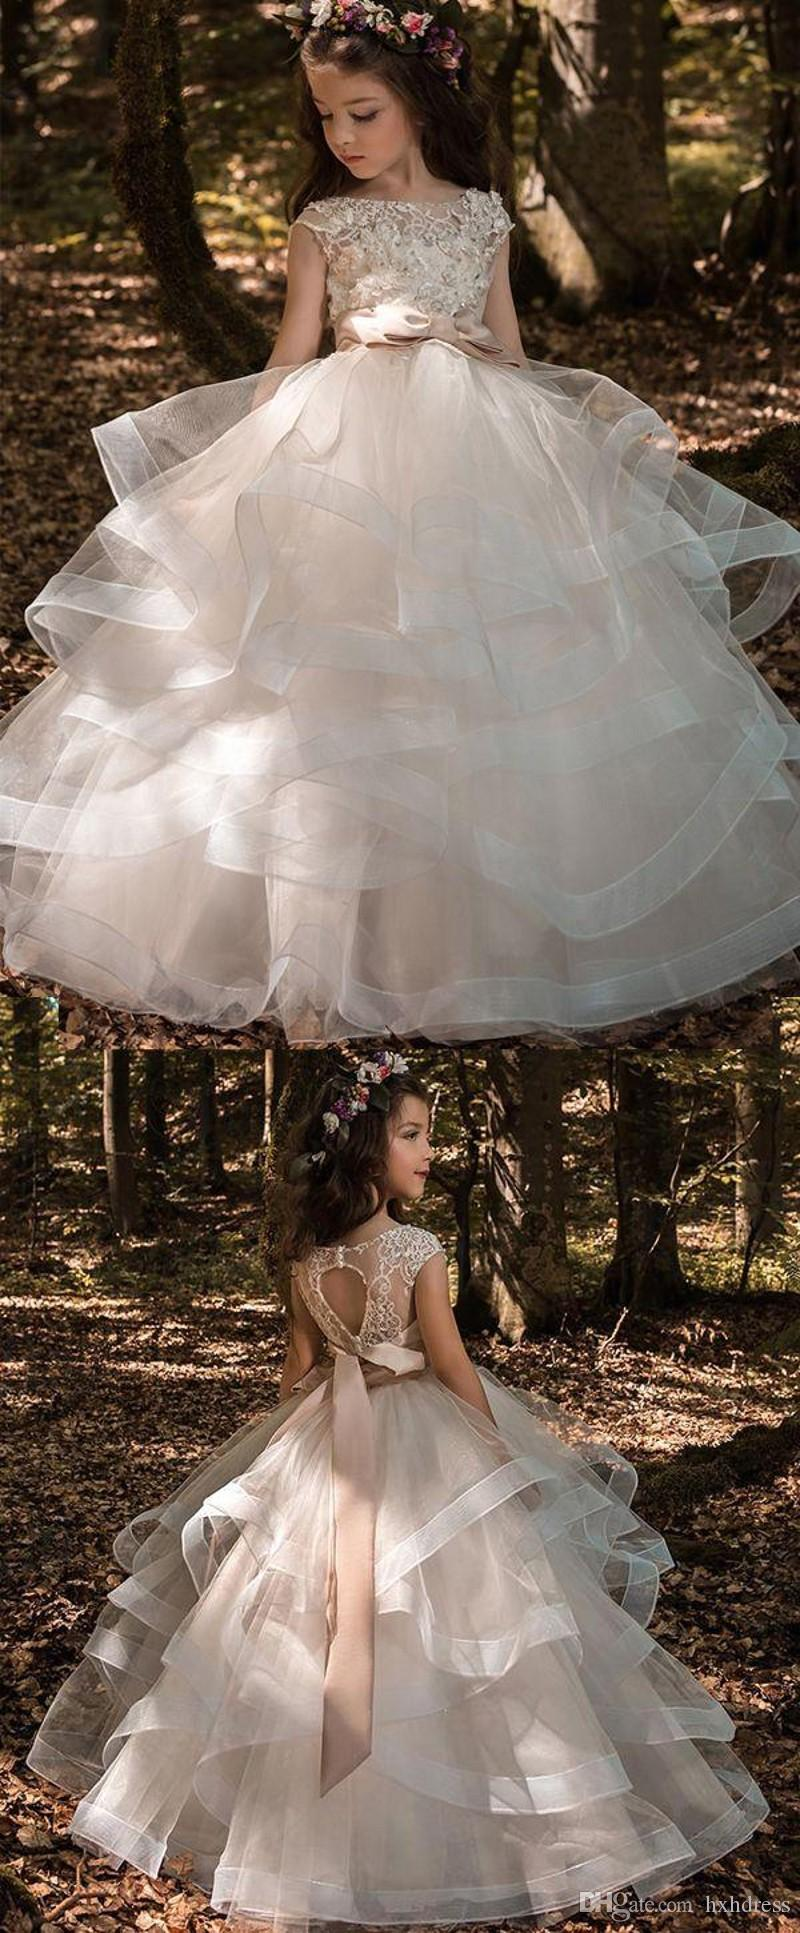 Tiered Ruffles Tulle Ball Gowns Girls Pageant Dresses Bow Floor Length Flower Girl Dress Lace Beaded Bateau Cap Sleeves Kids Wedding Dresses